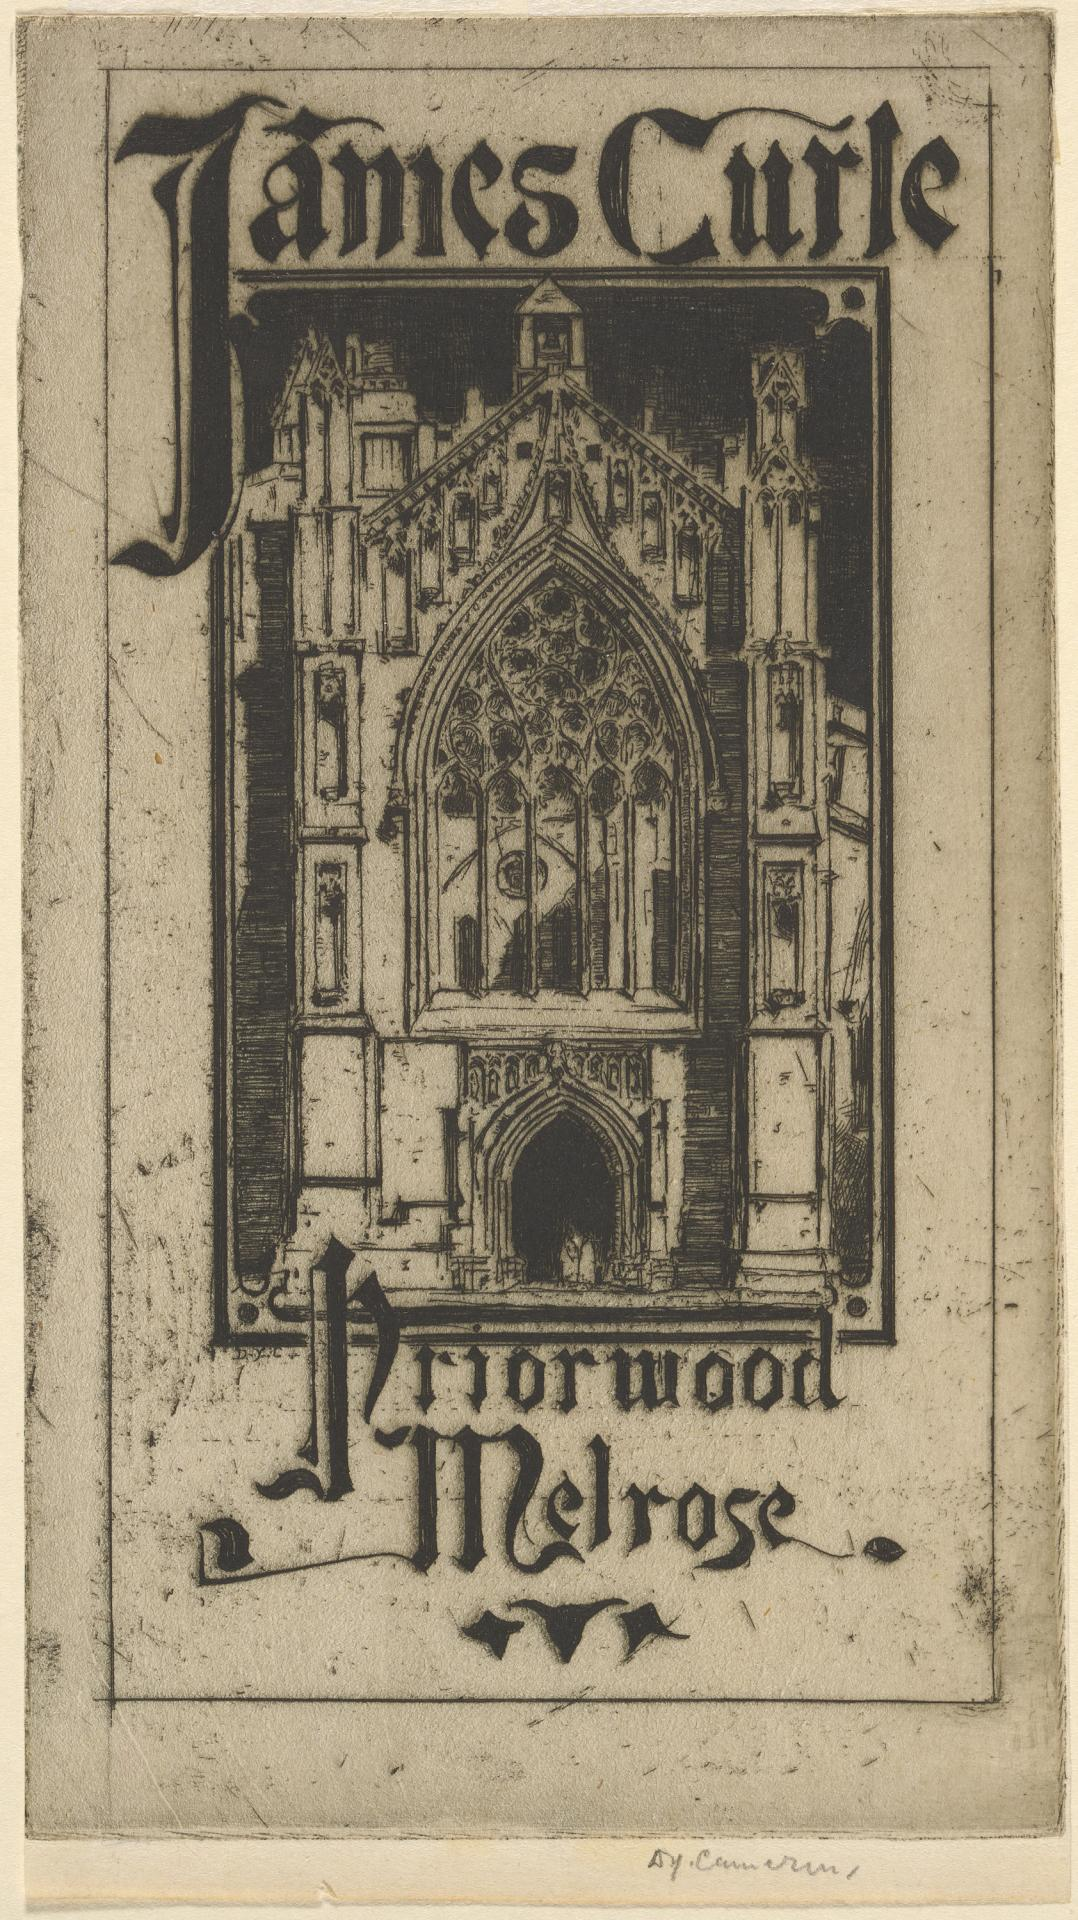 James Curle, bookplate